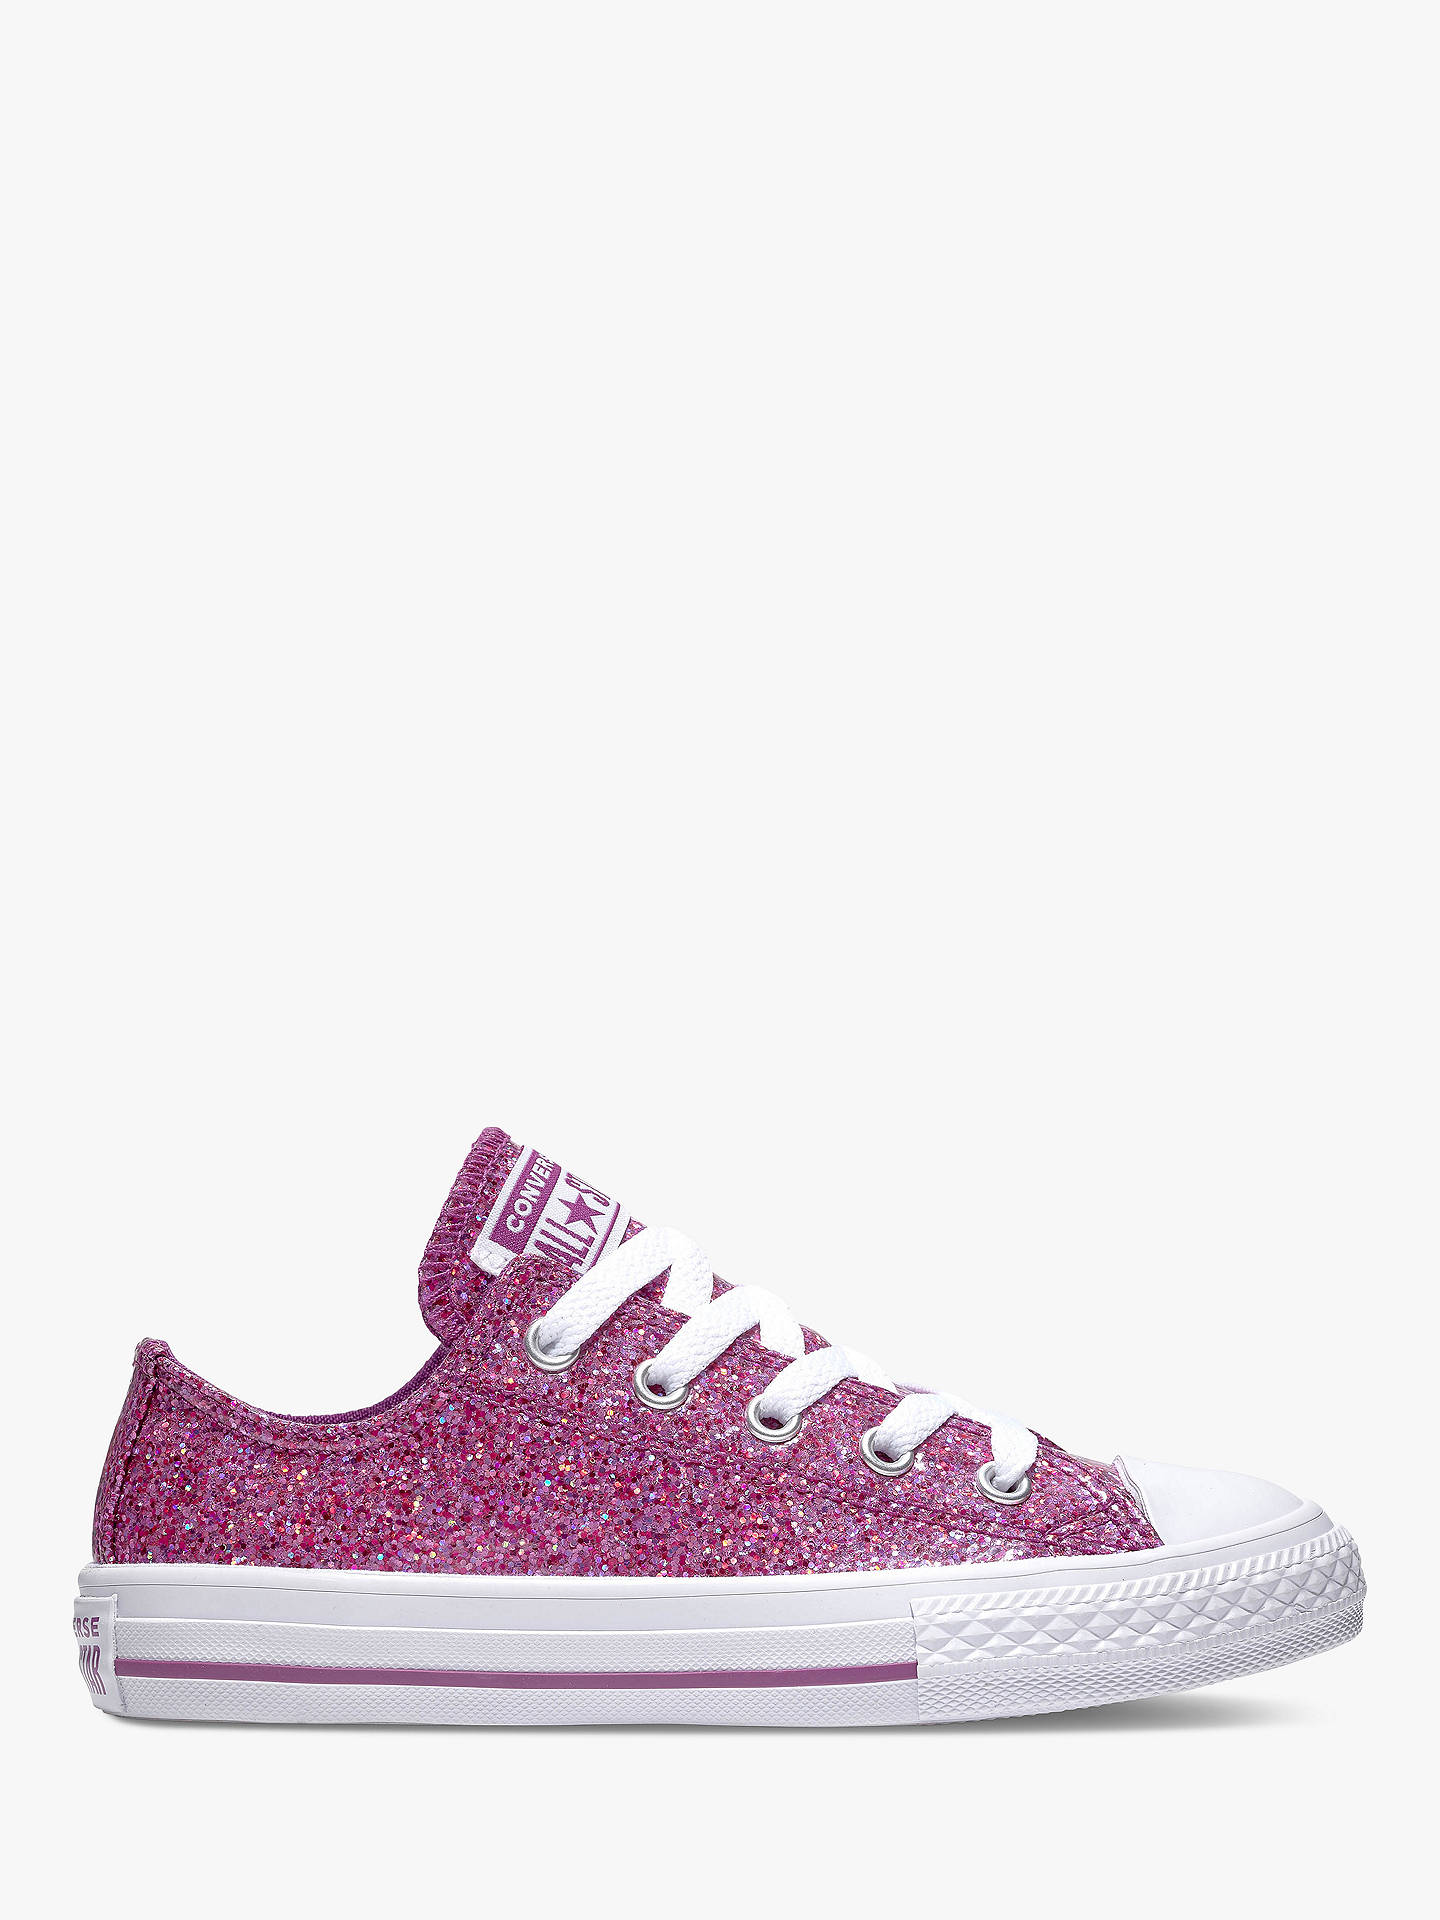 ccd343ec4cd9 Buy Converse Children s All Star 2V Glitter Trainers